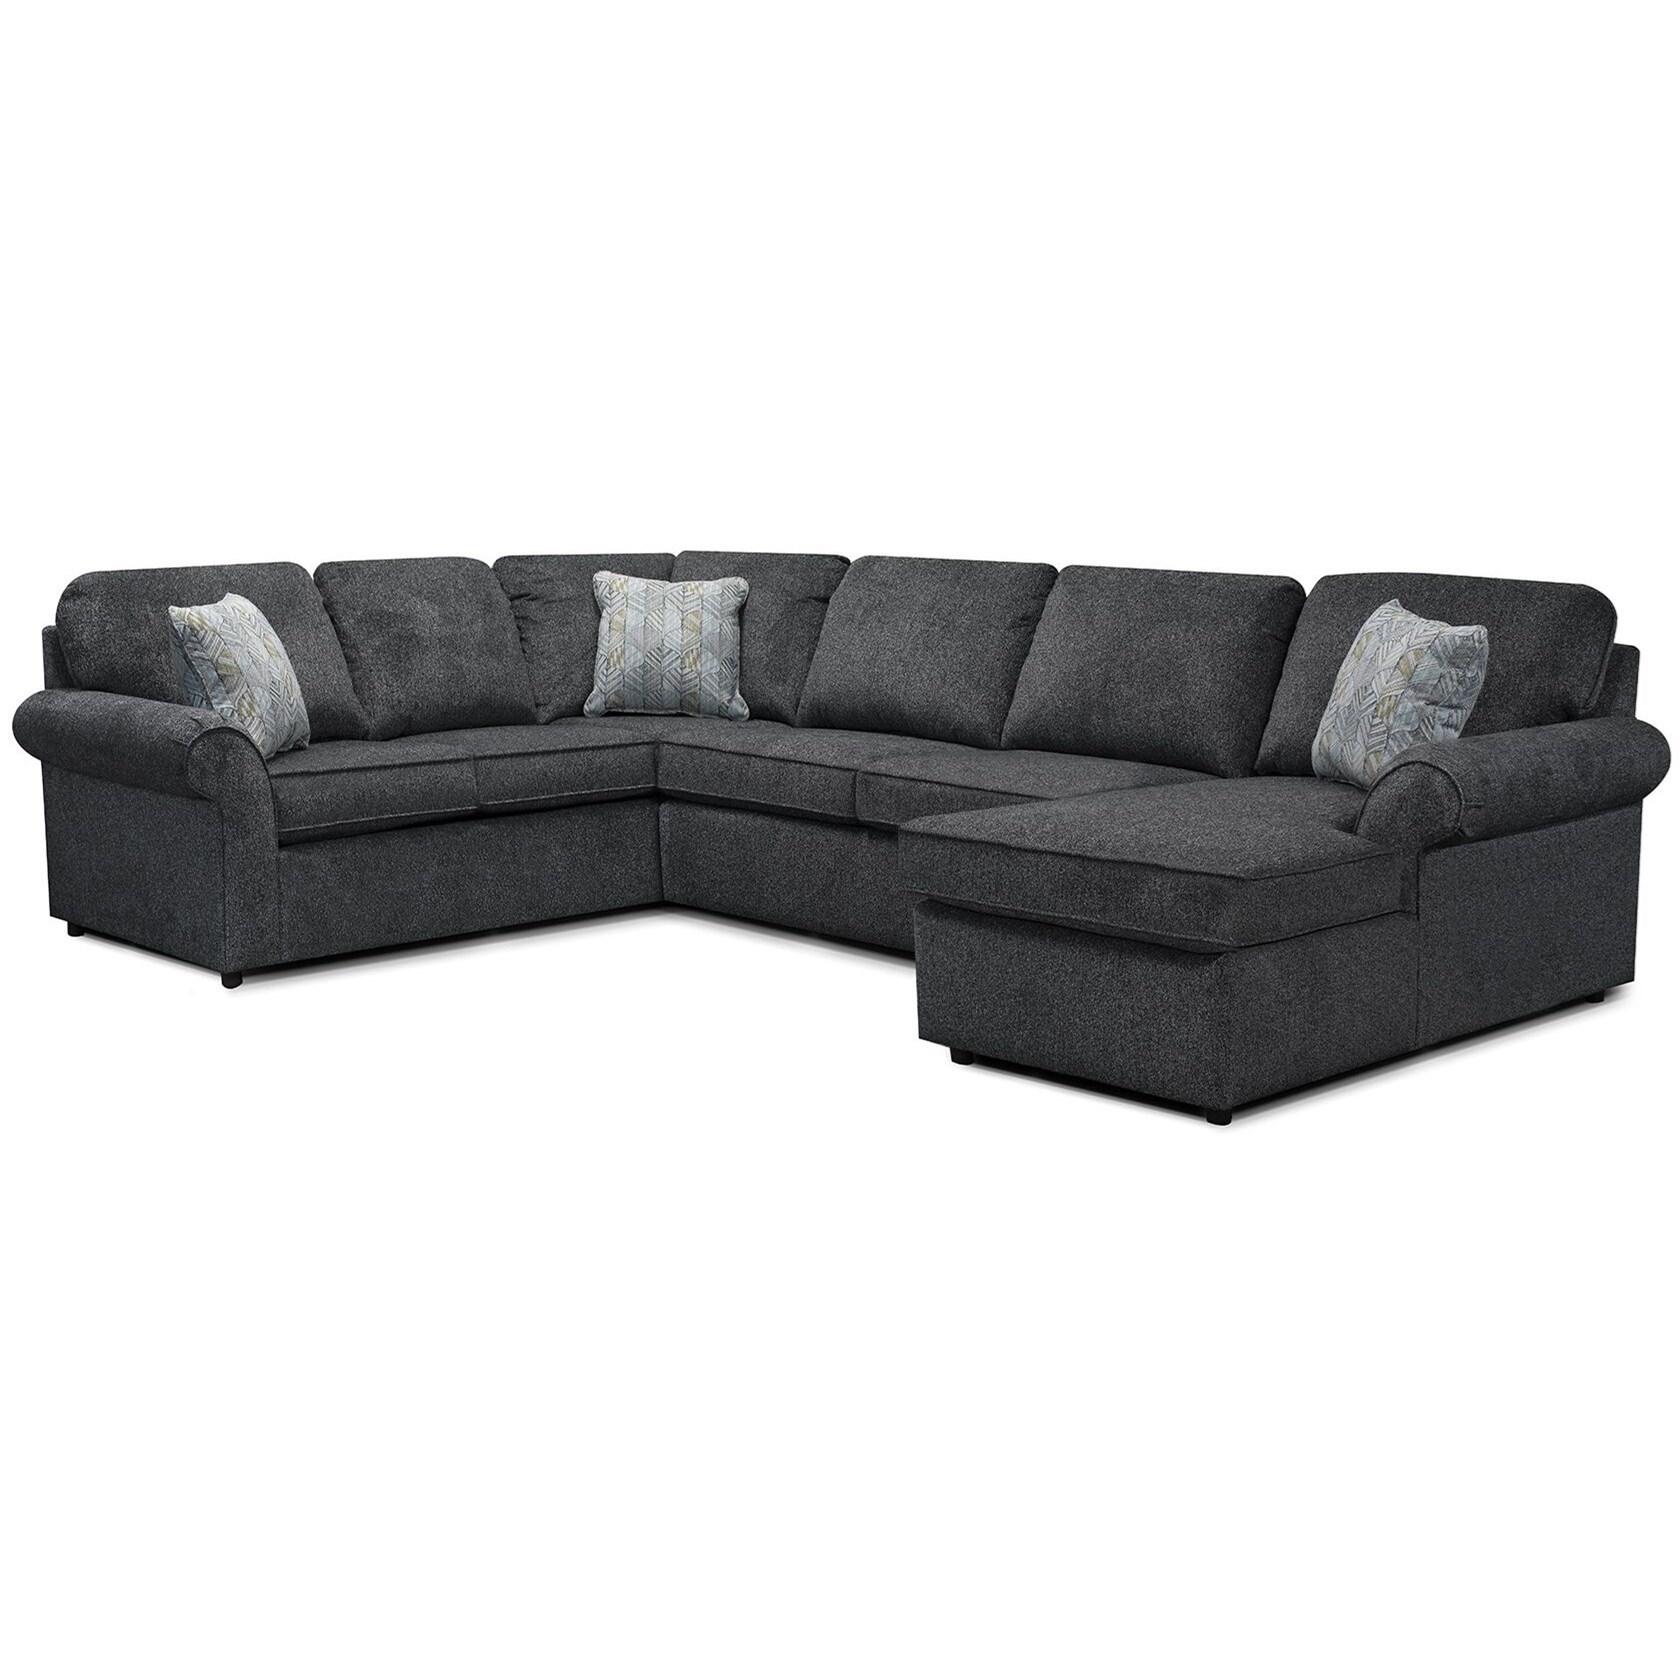 Malibu 5-6 Seat (right side) Chaise Sectional by England at Virginia Furniture Market